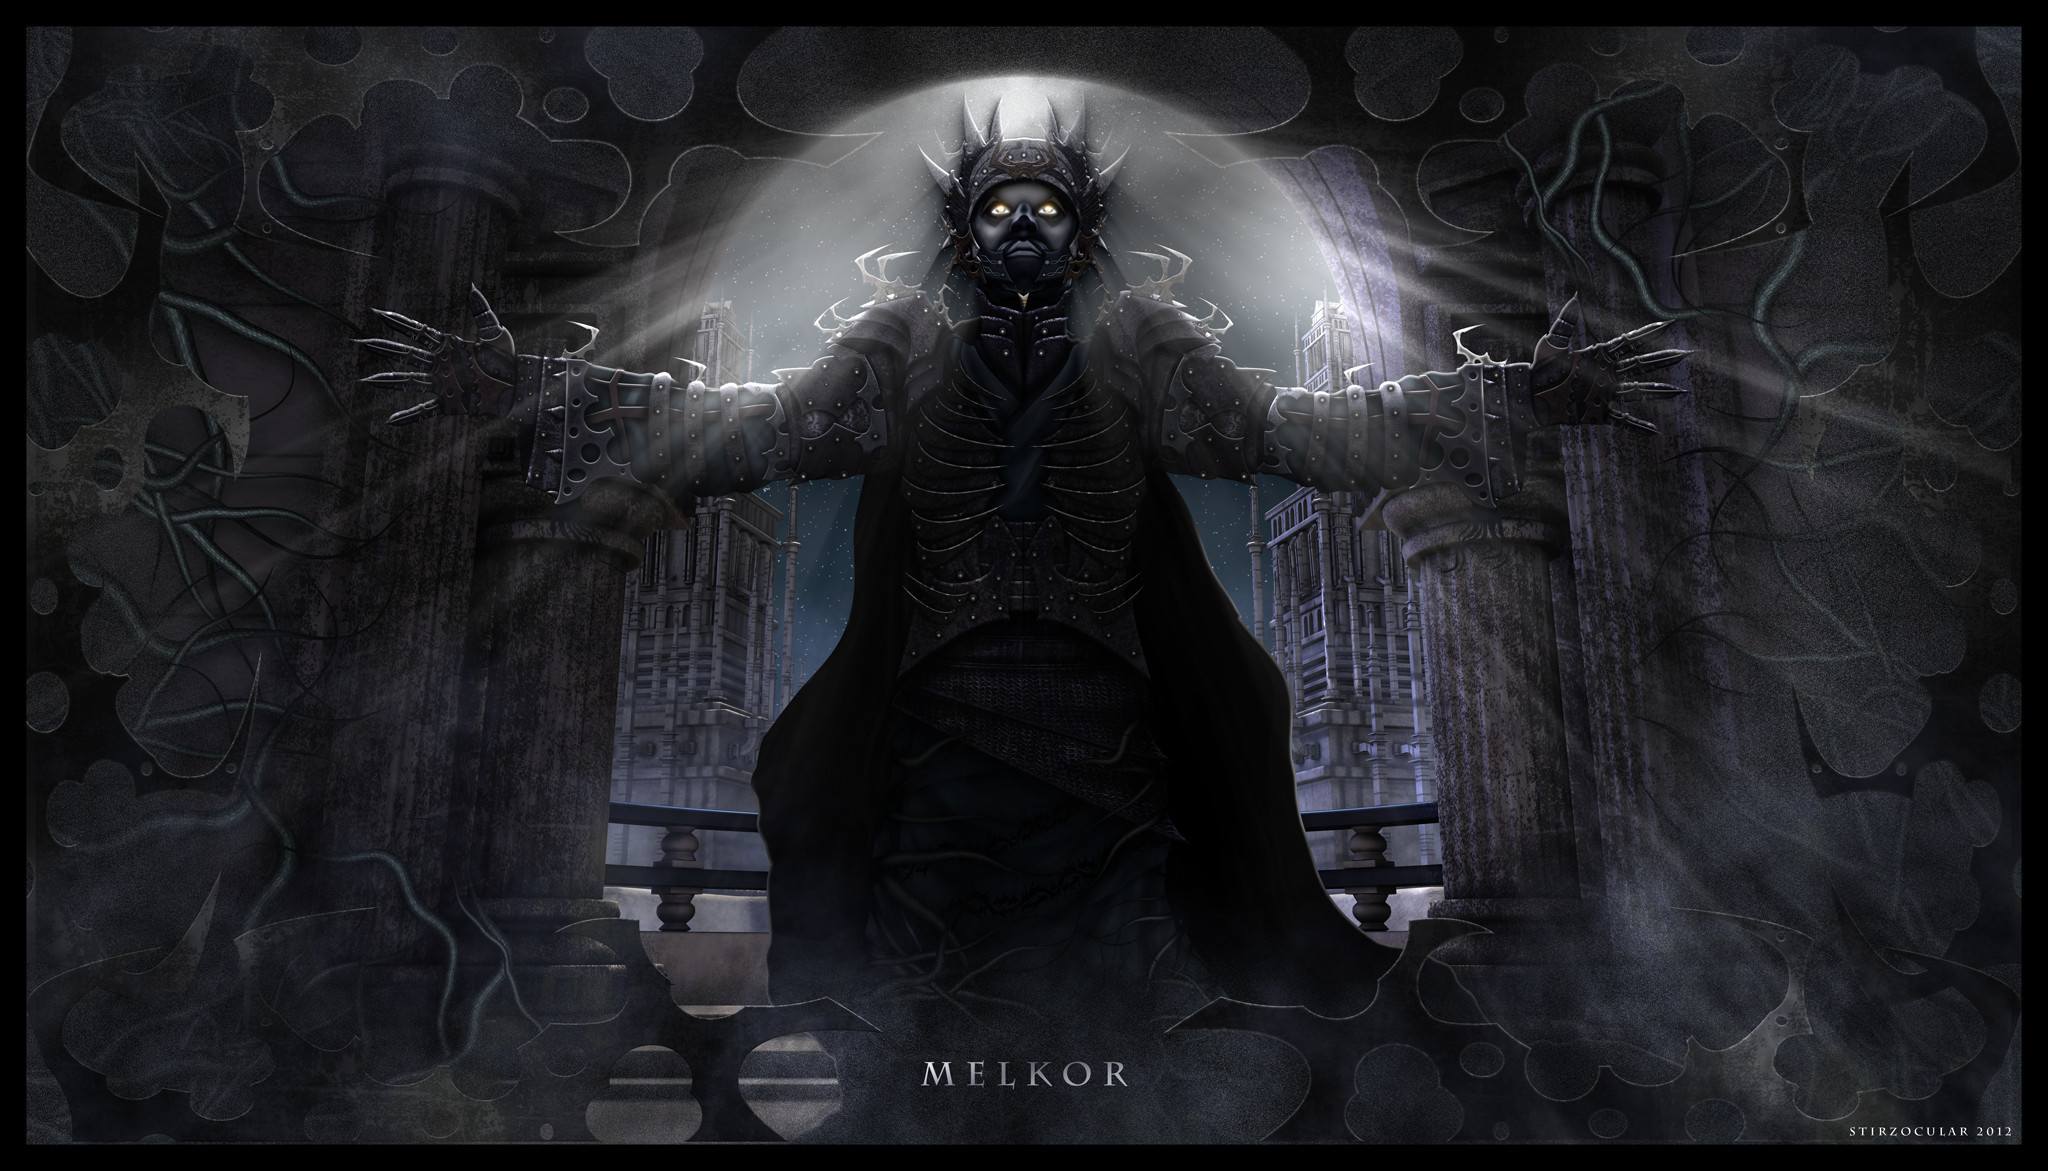 Res: 2048x1171, Melkor Unchained by Stirzocular Melkor Unchained by Stirzocular